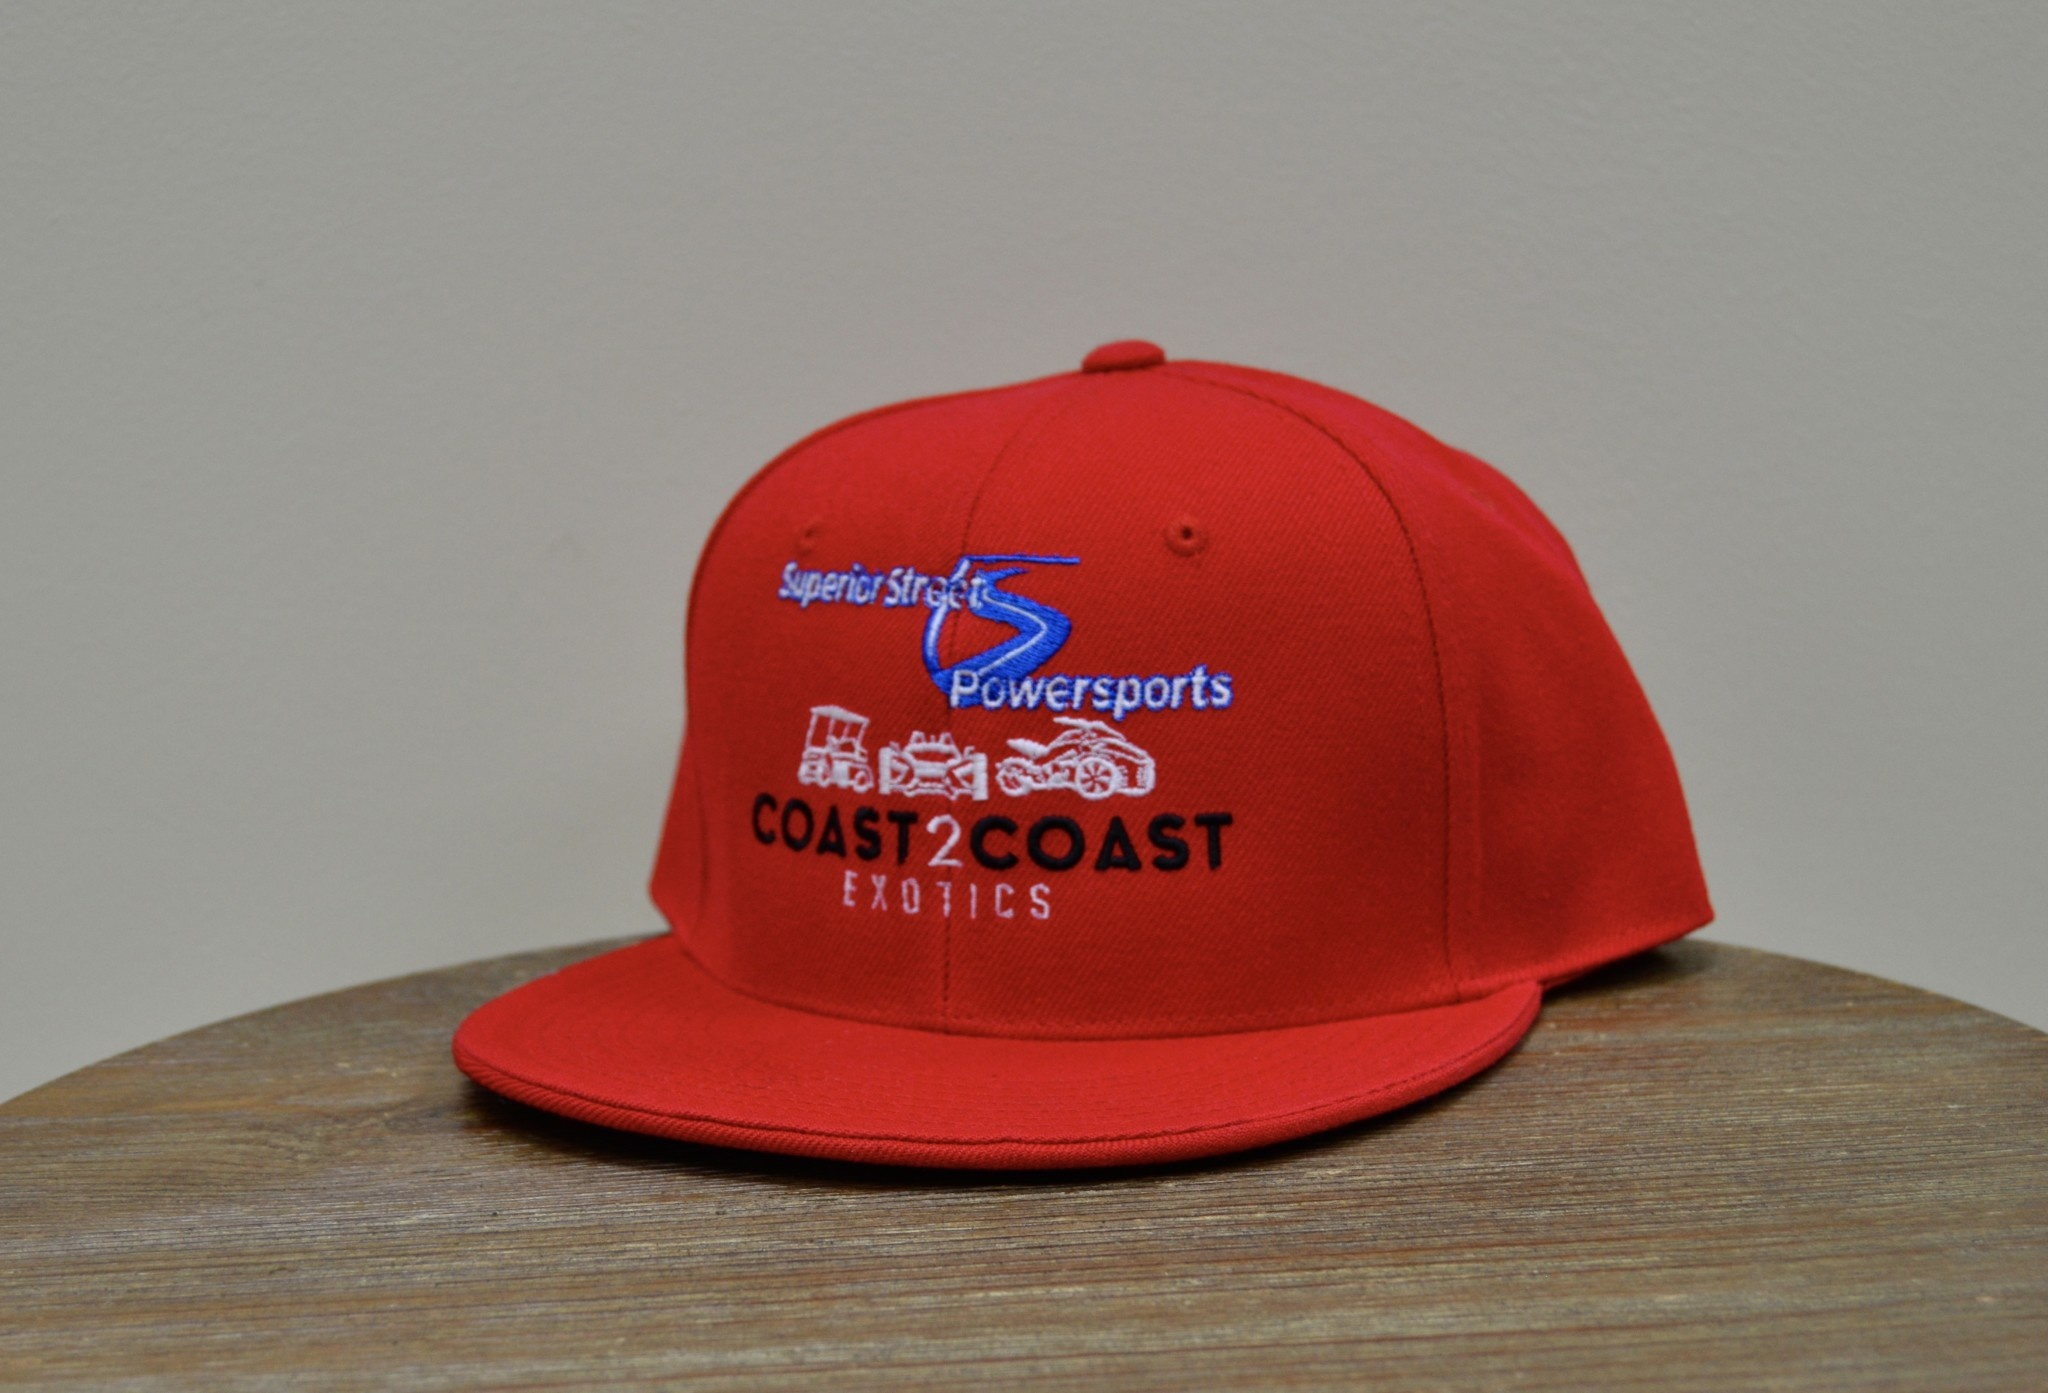 Superior Street Powersports/C2C   Flat Fitted Baseball Hat - Red